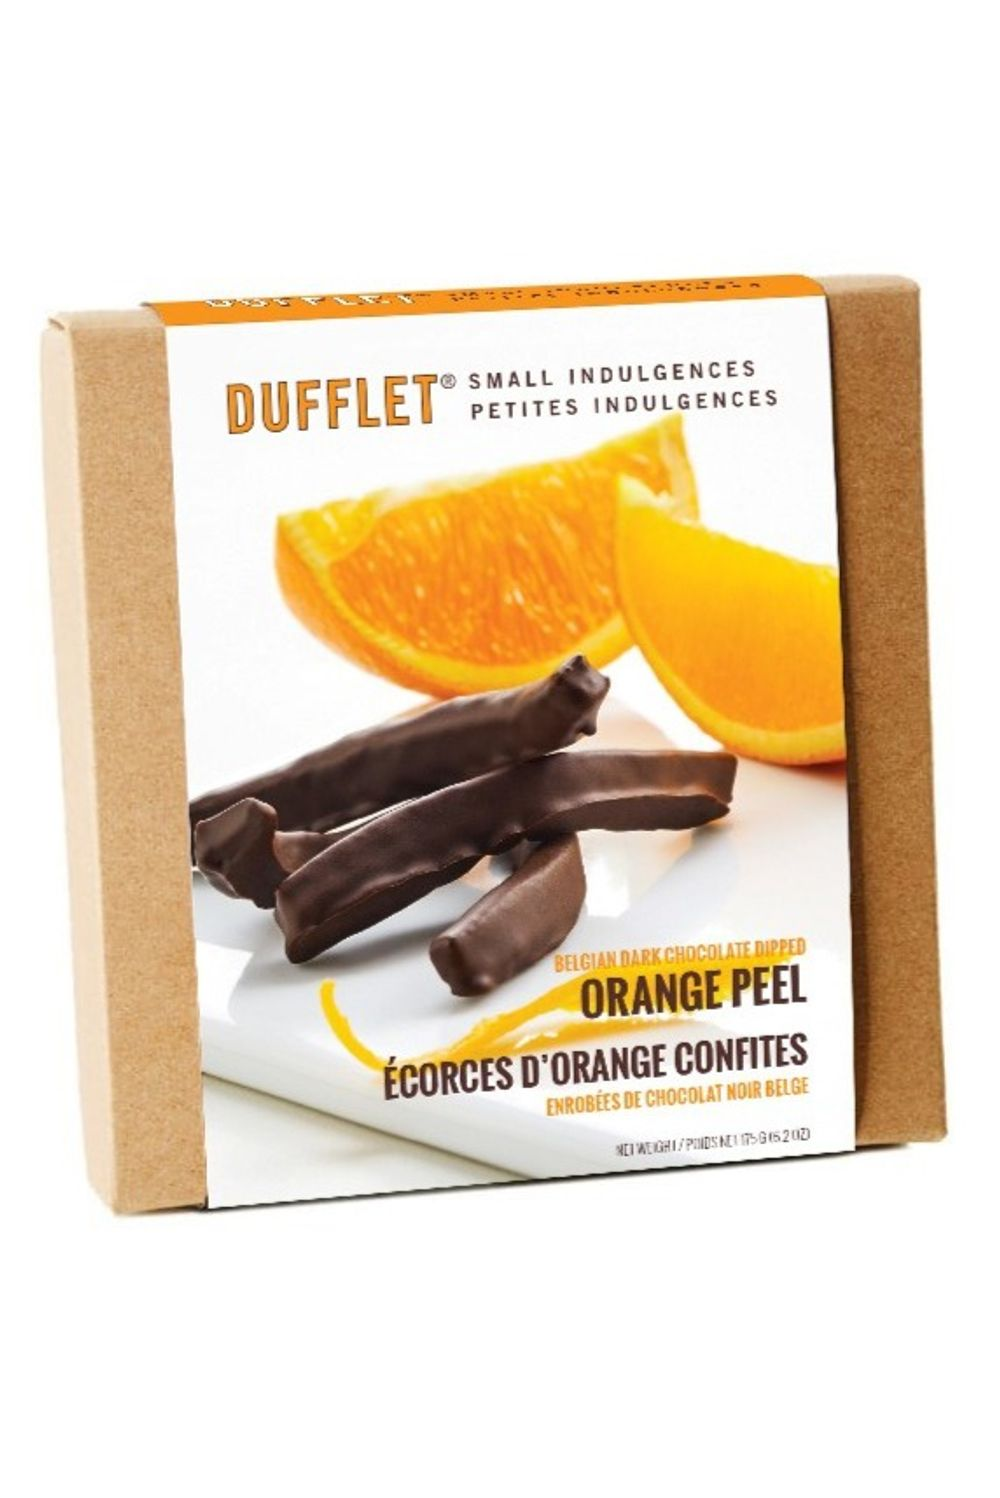 Dark Chocolate Dipped Orange Peel